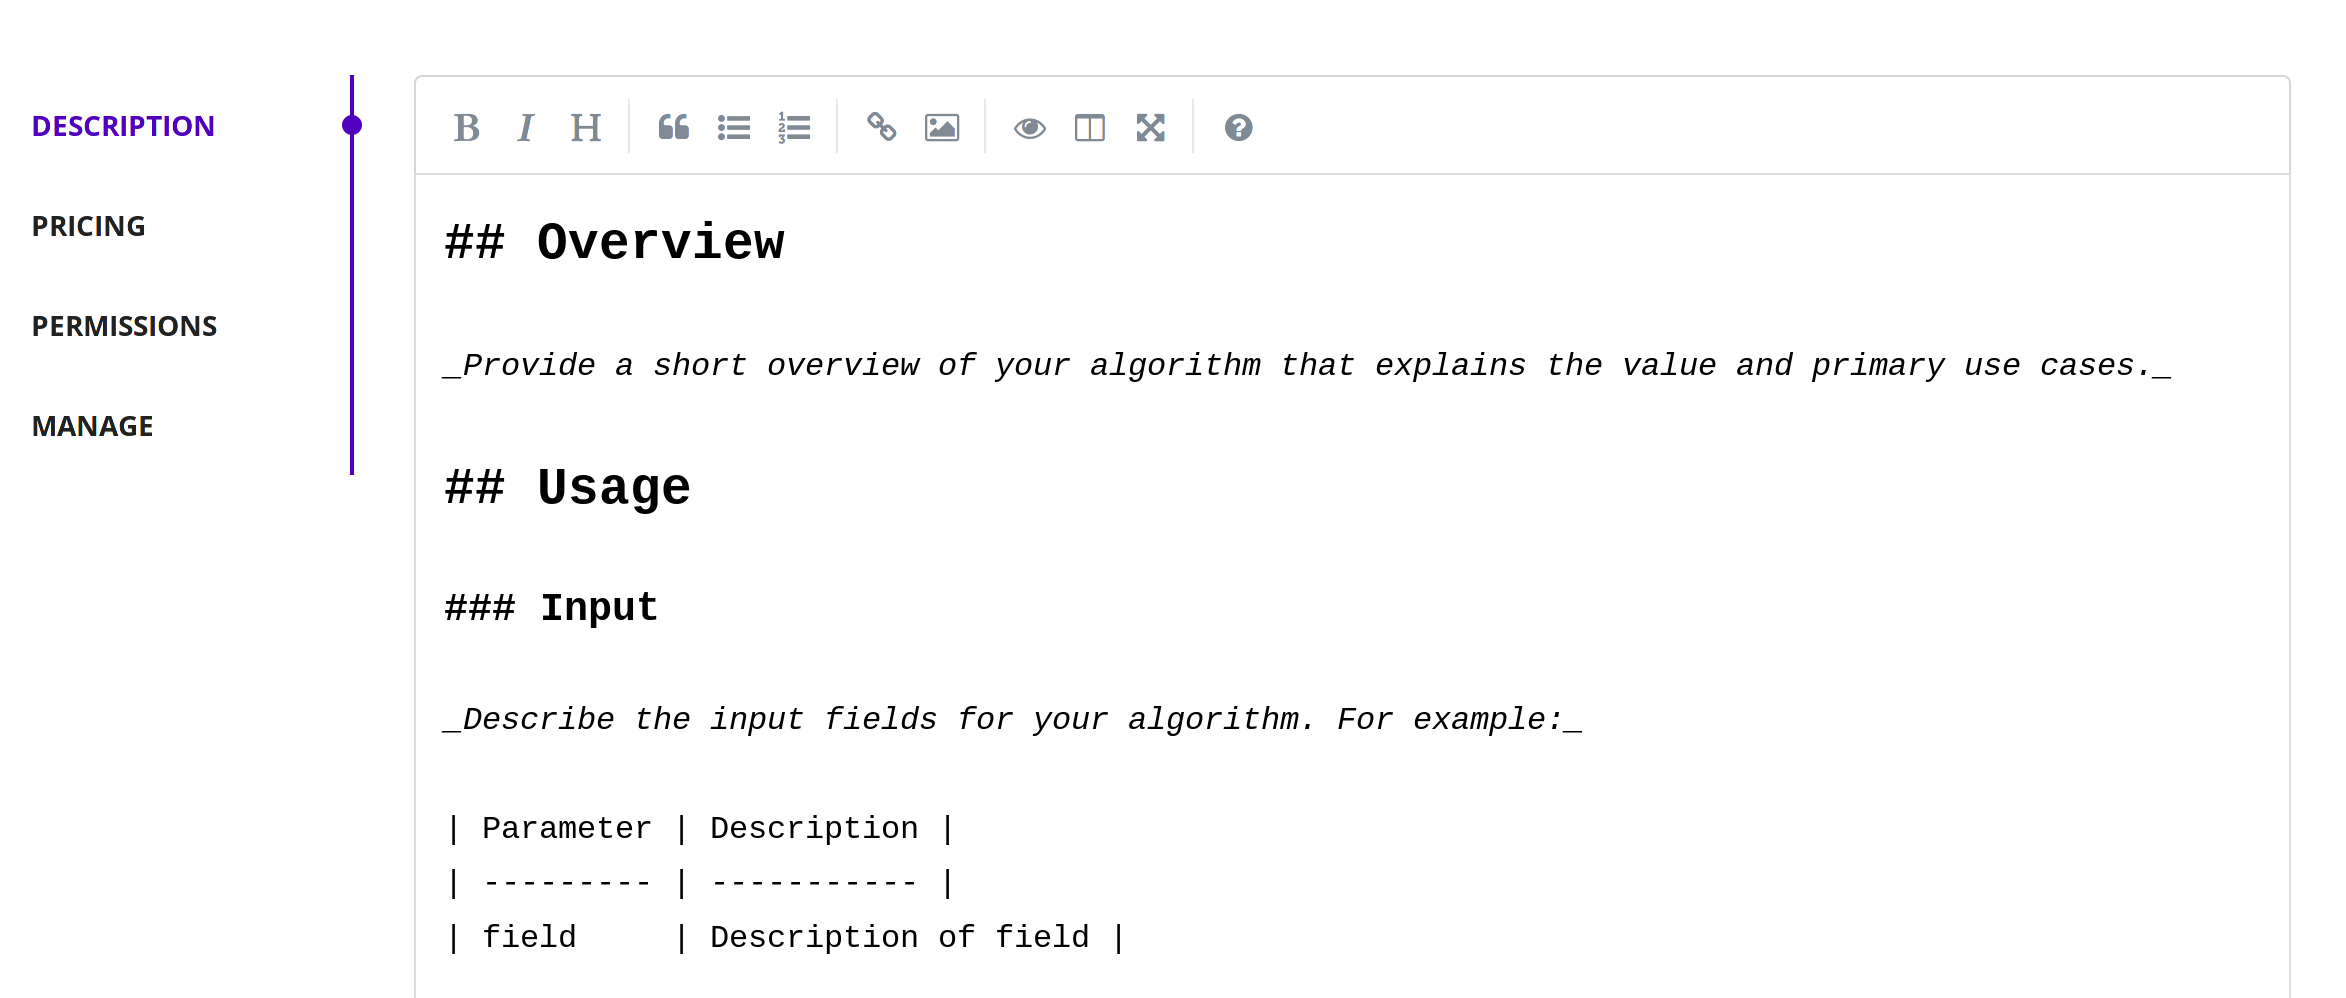 New Markdown Editor for Algorithm Descriptions